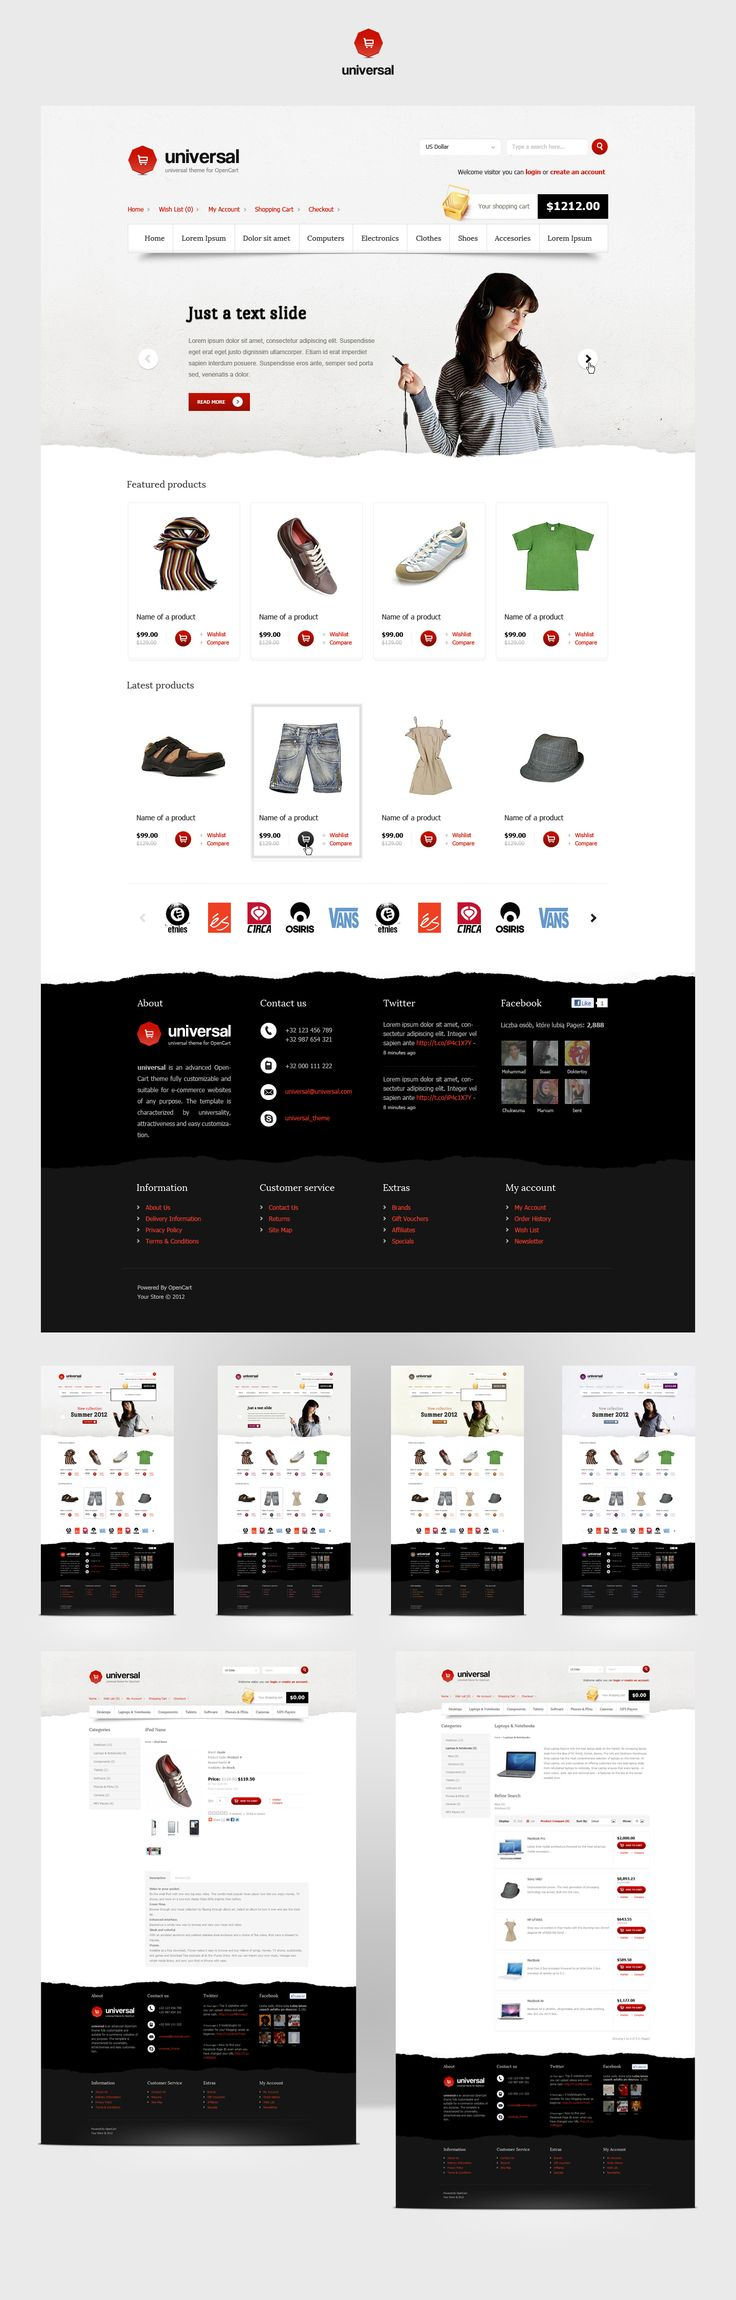 Universal - OpenCart Premium Theme - great product pictures change everything!